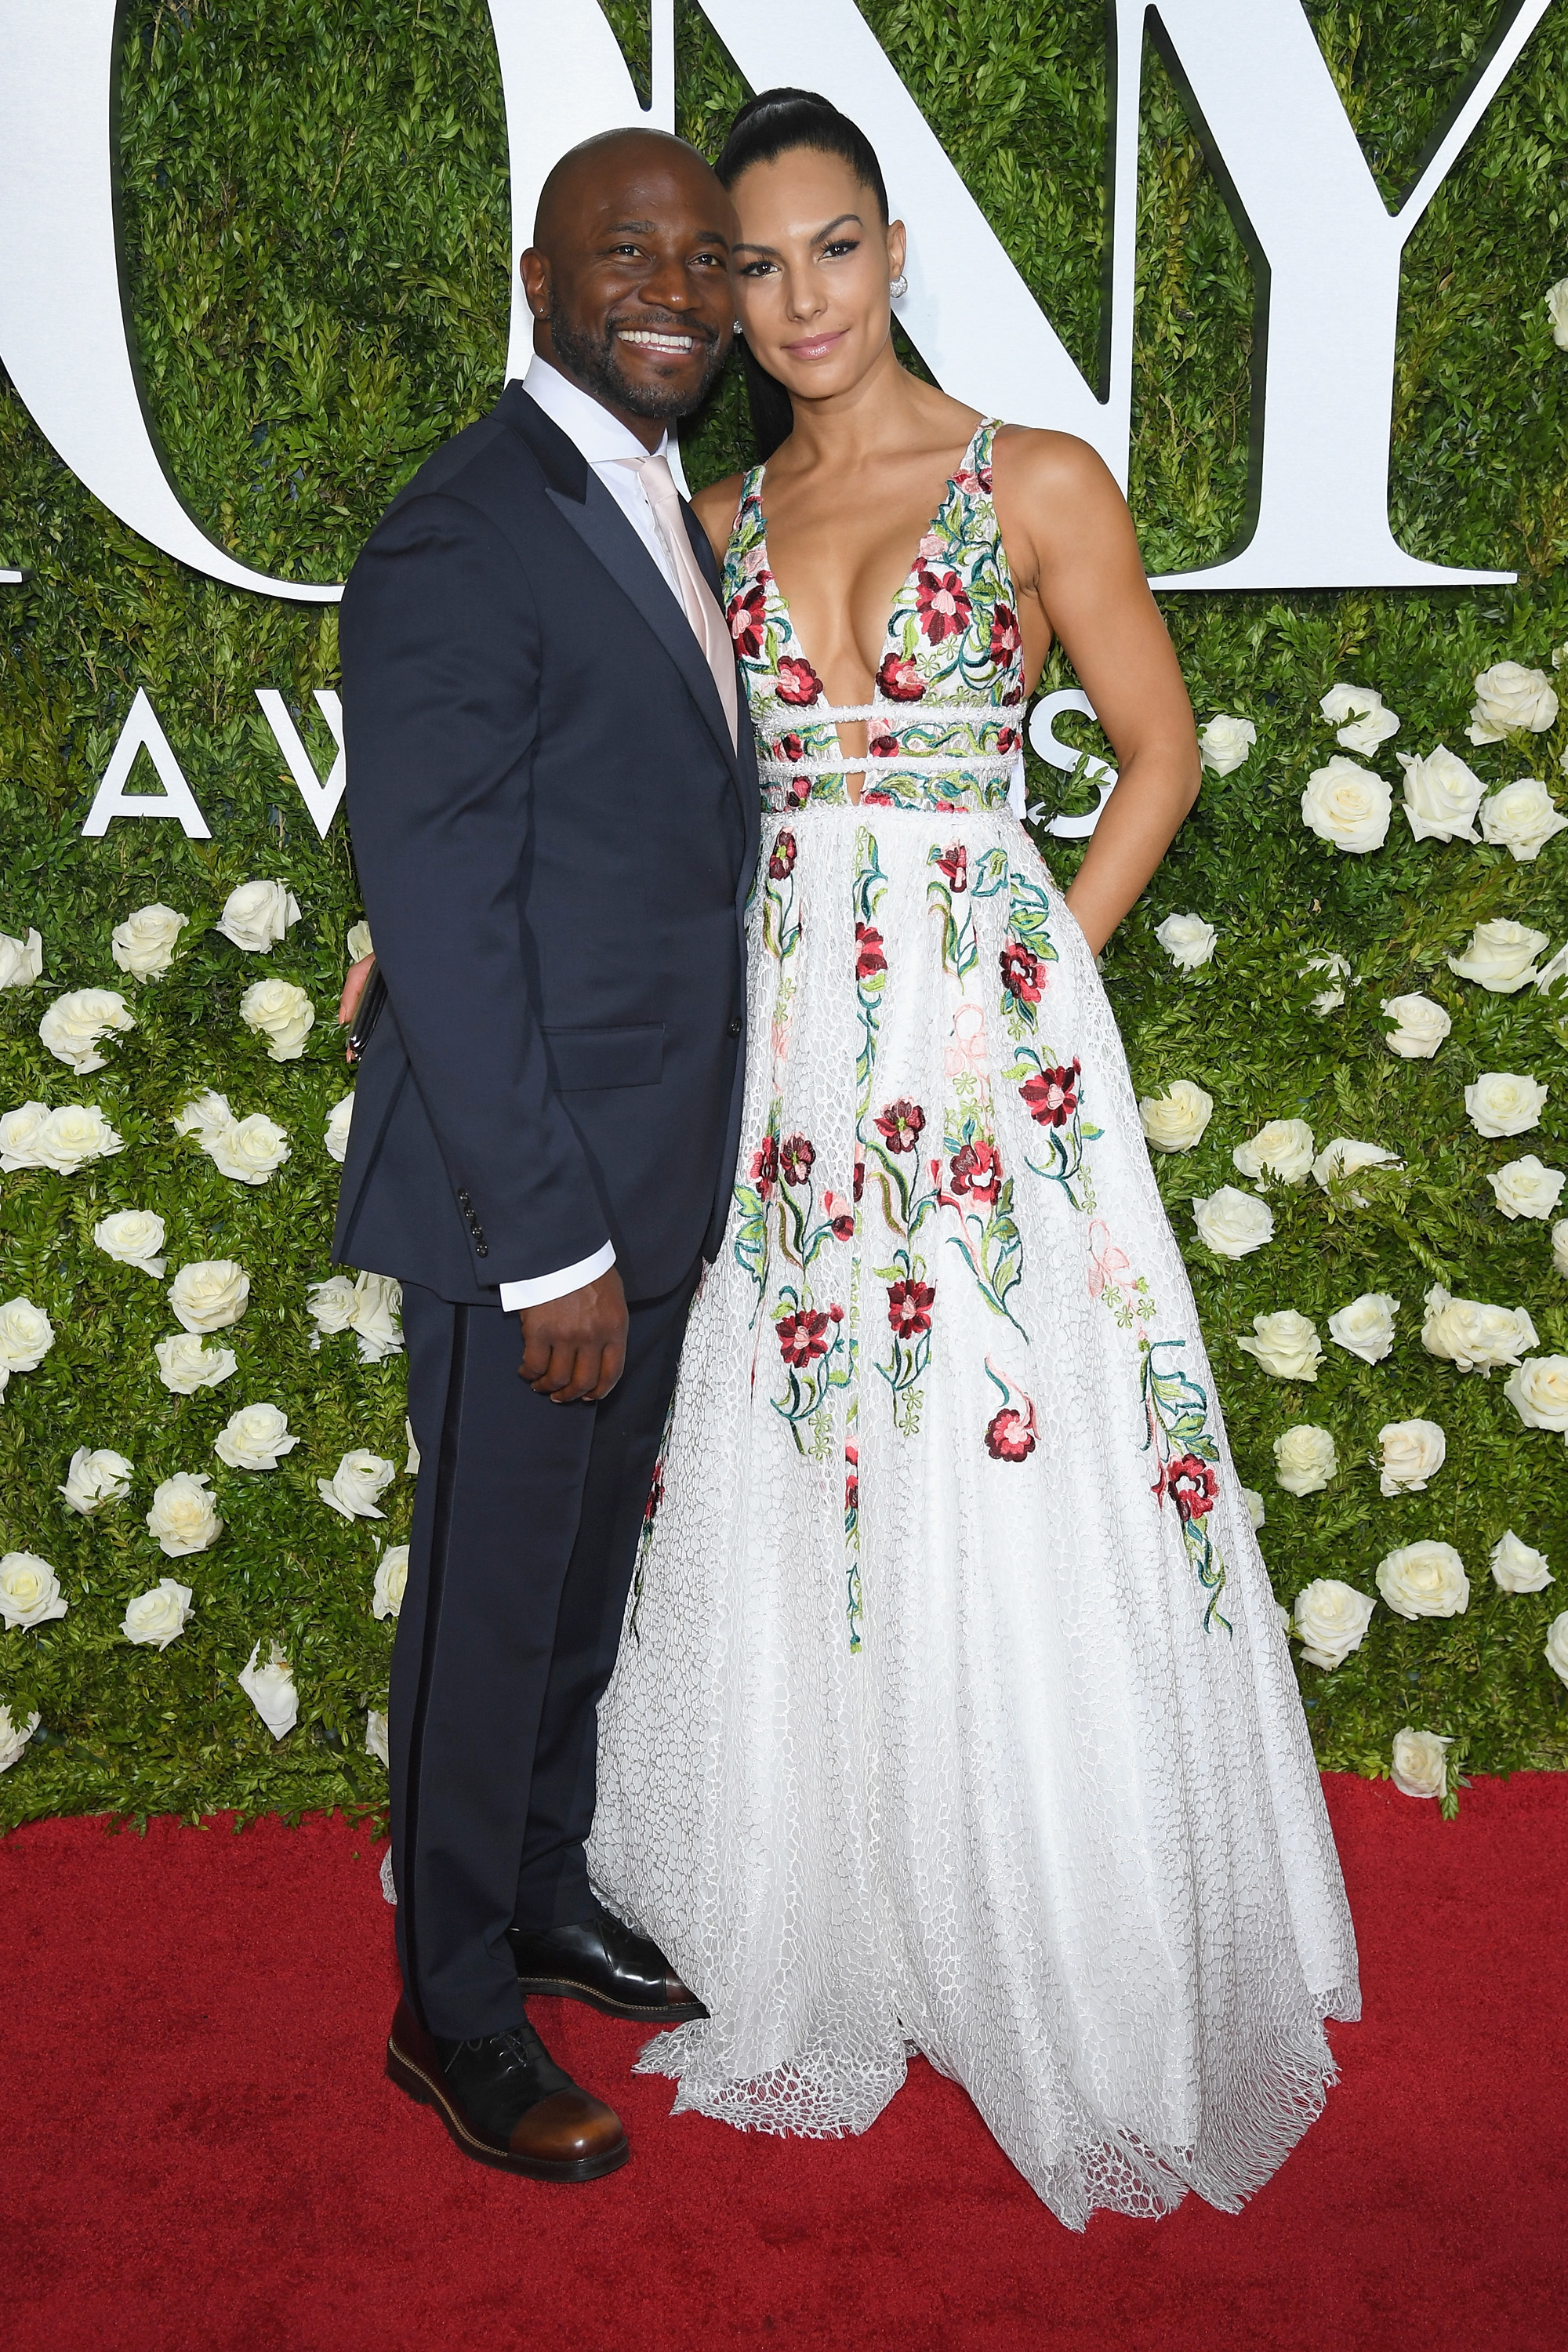 Taye Diggs and Amanza Smith Brown arrive at the Tony Awards at Radio City Music Hall in New York City on June 11, 2017.